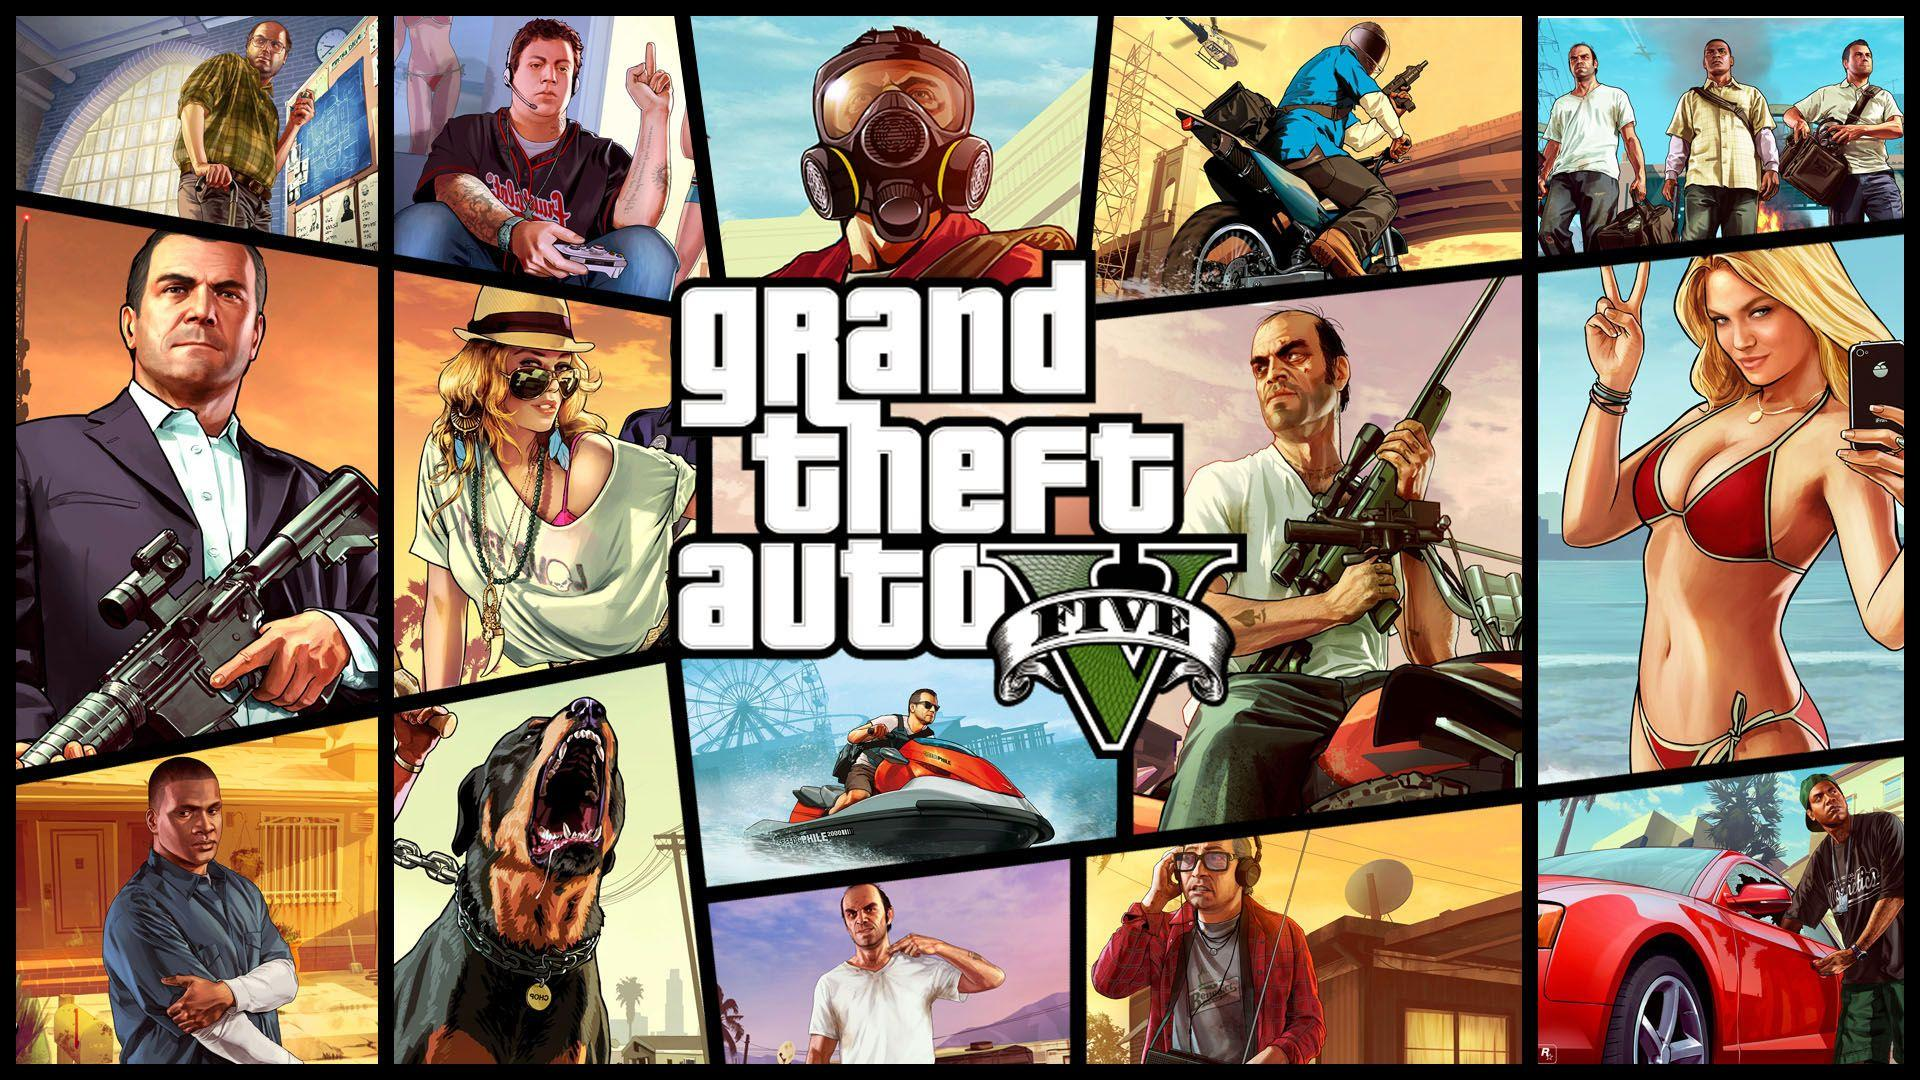 Grand Theft Auto V 5 (GTA 5) CD Key + Crack PC Game Free Download